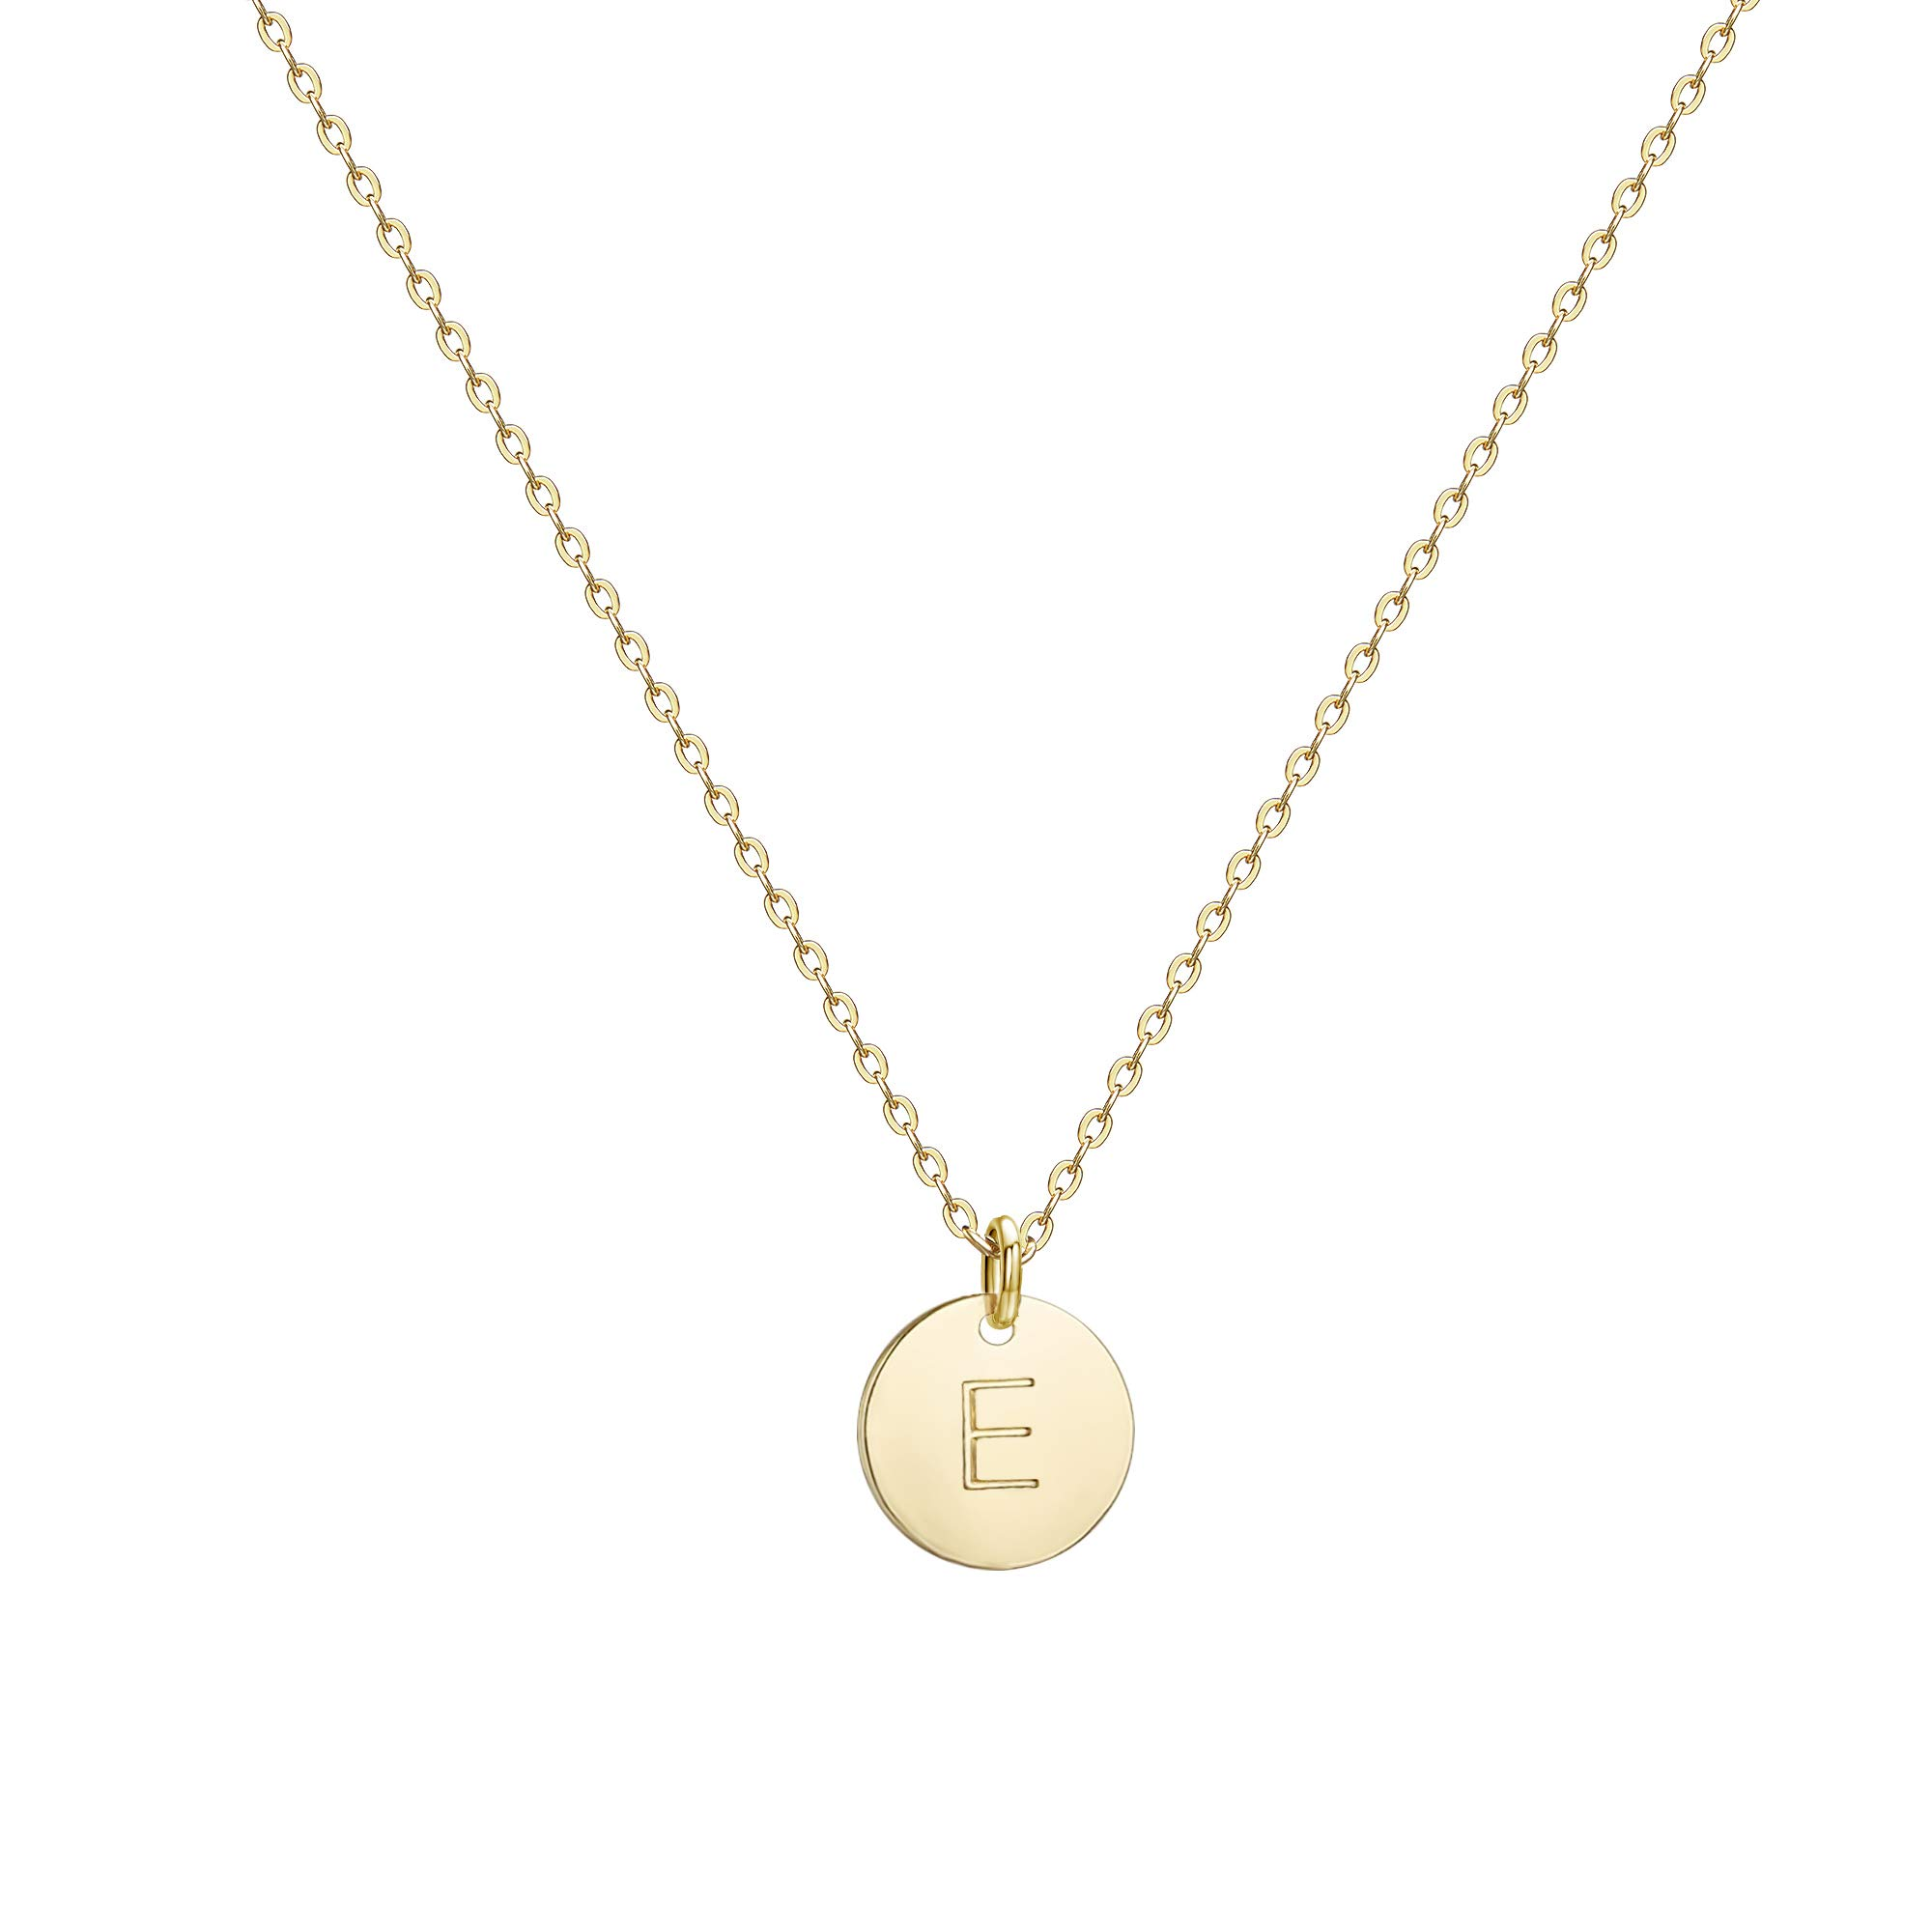 b40a07d68 Galleon - Befettly Initial Necklace Pendant 14K Gold-Plated Round Disc  Double Side Engraved Hammered Choker Necklace 16.5'' Adjustable Personalized  Alphabet ...